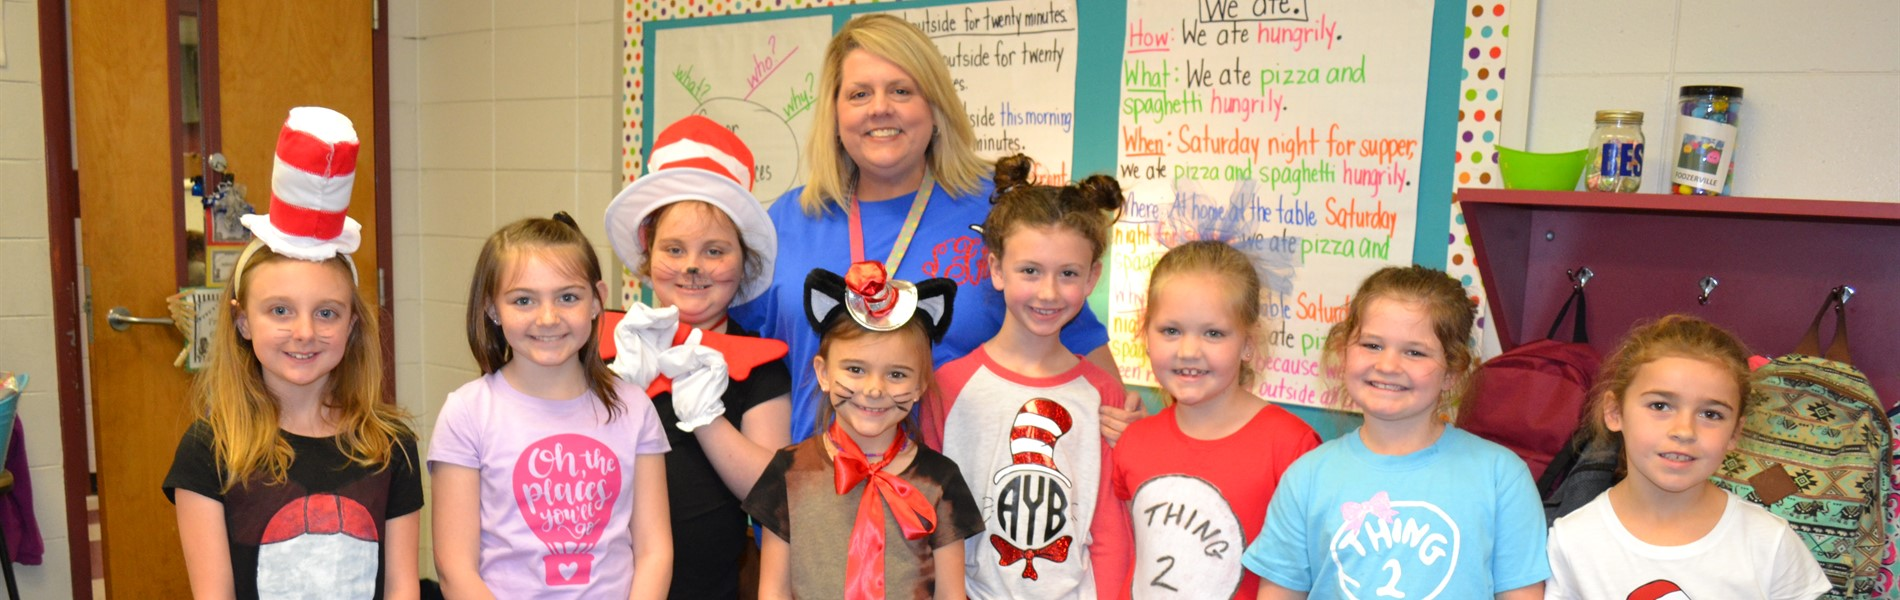 Mrs. Flynn and students dressed as Dr. Seuss characters